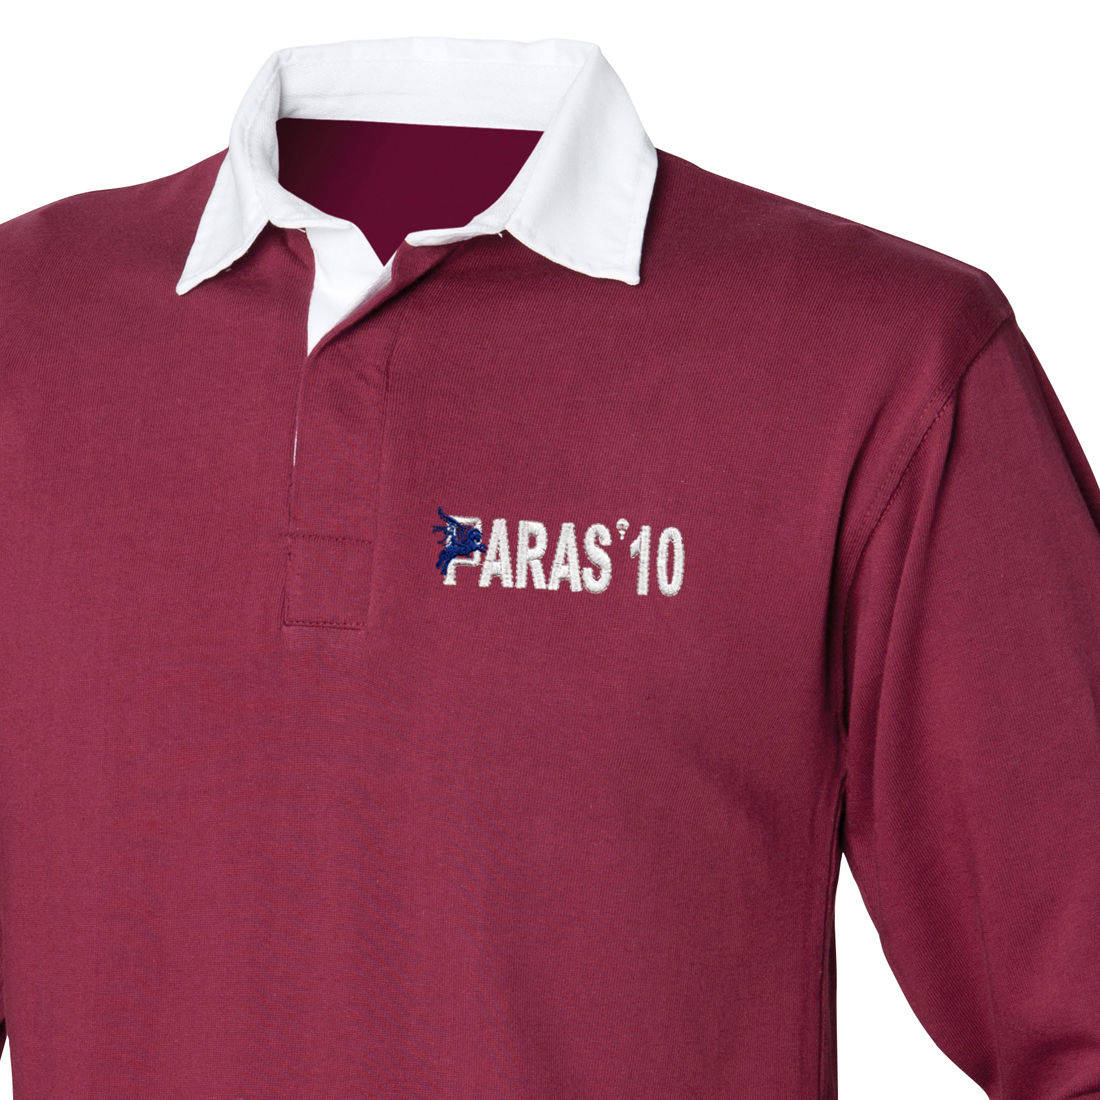 Rugby Shirt - Maroon - Paras 10